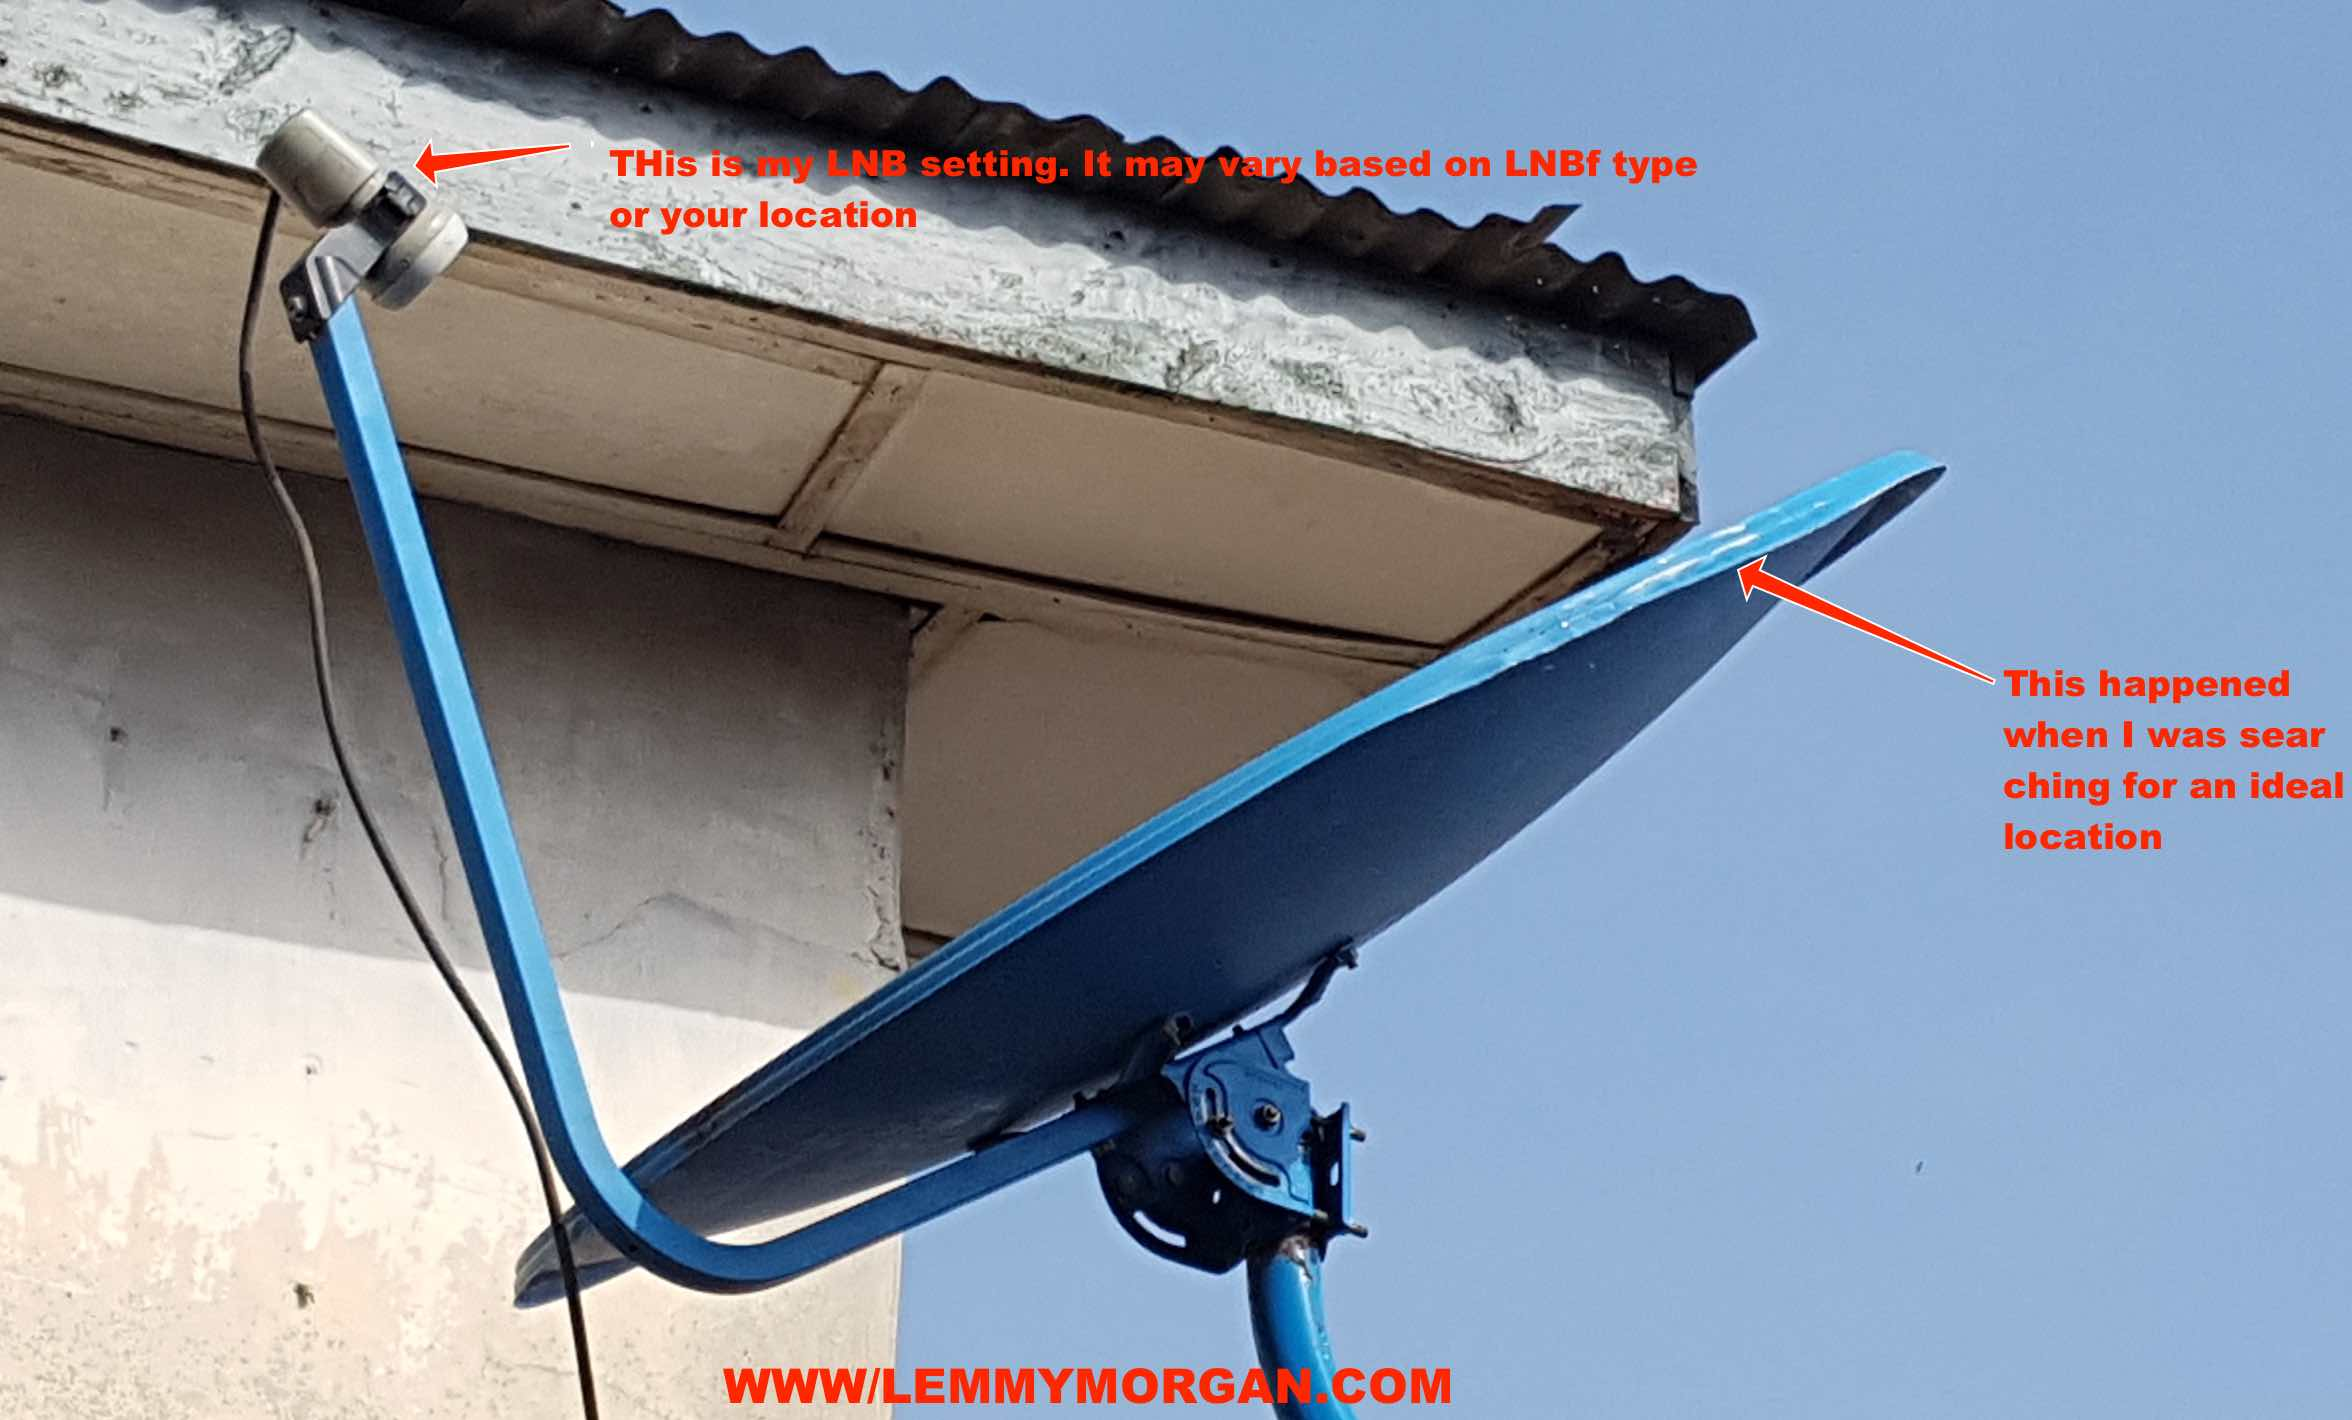 [Tut]Tips to tracking TSTV Africa channels on a 90cm dish easily-Watch it with any FTA/Standalone decoders